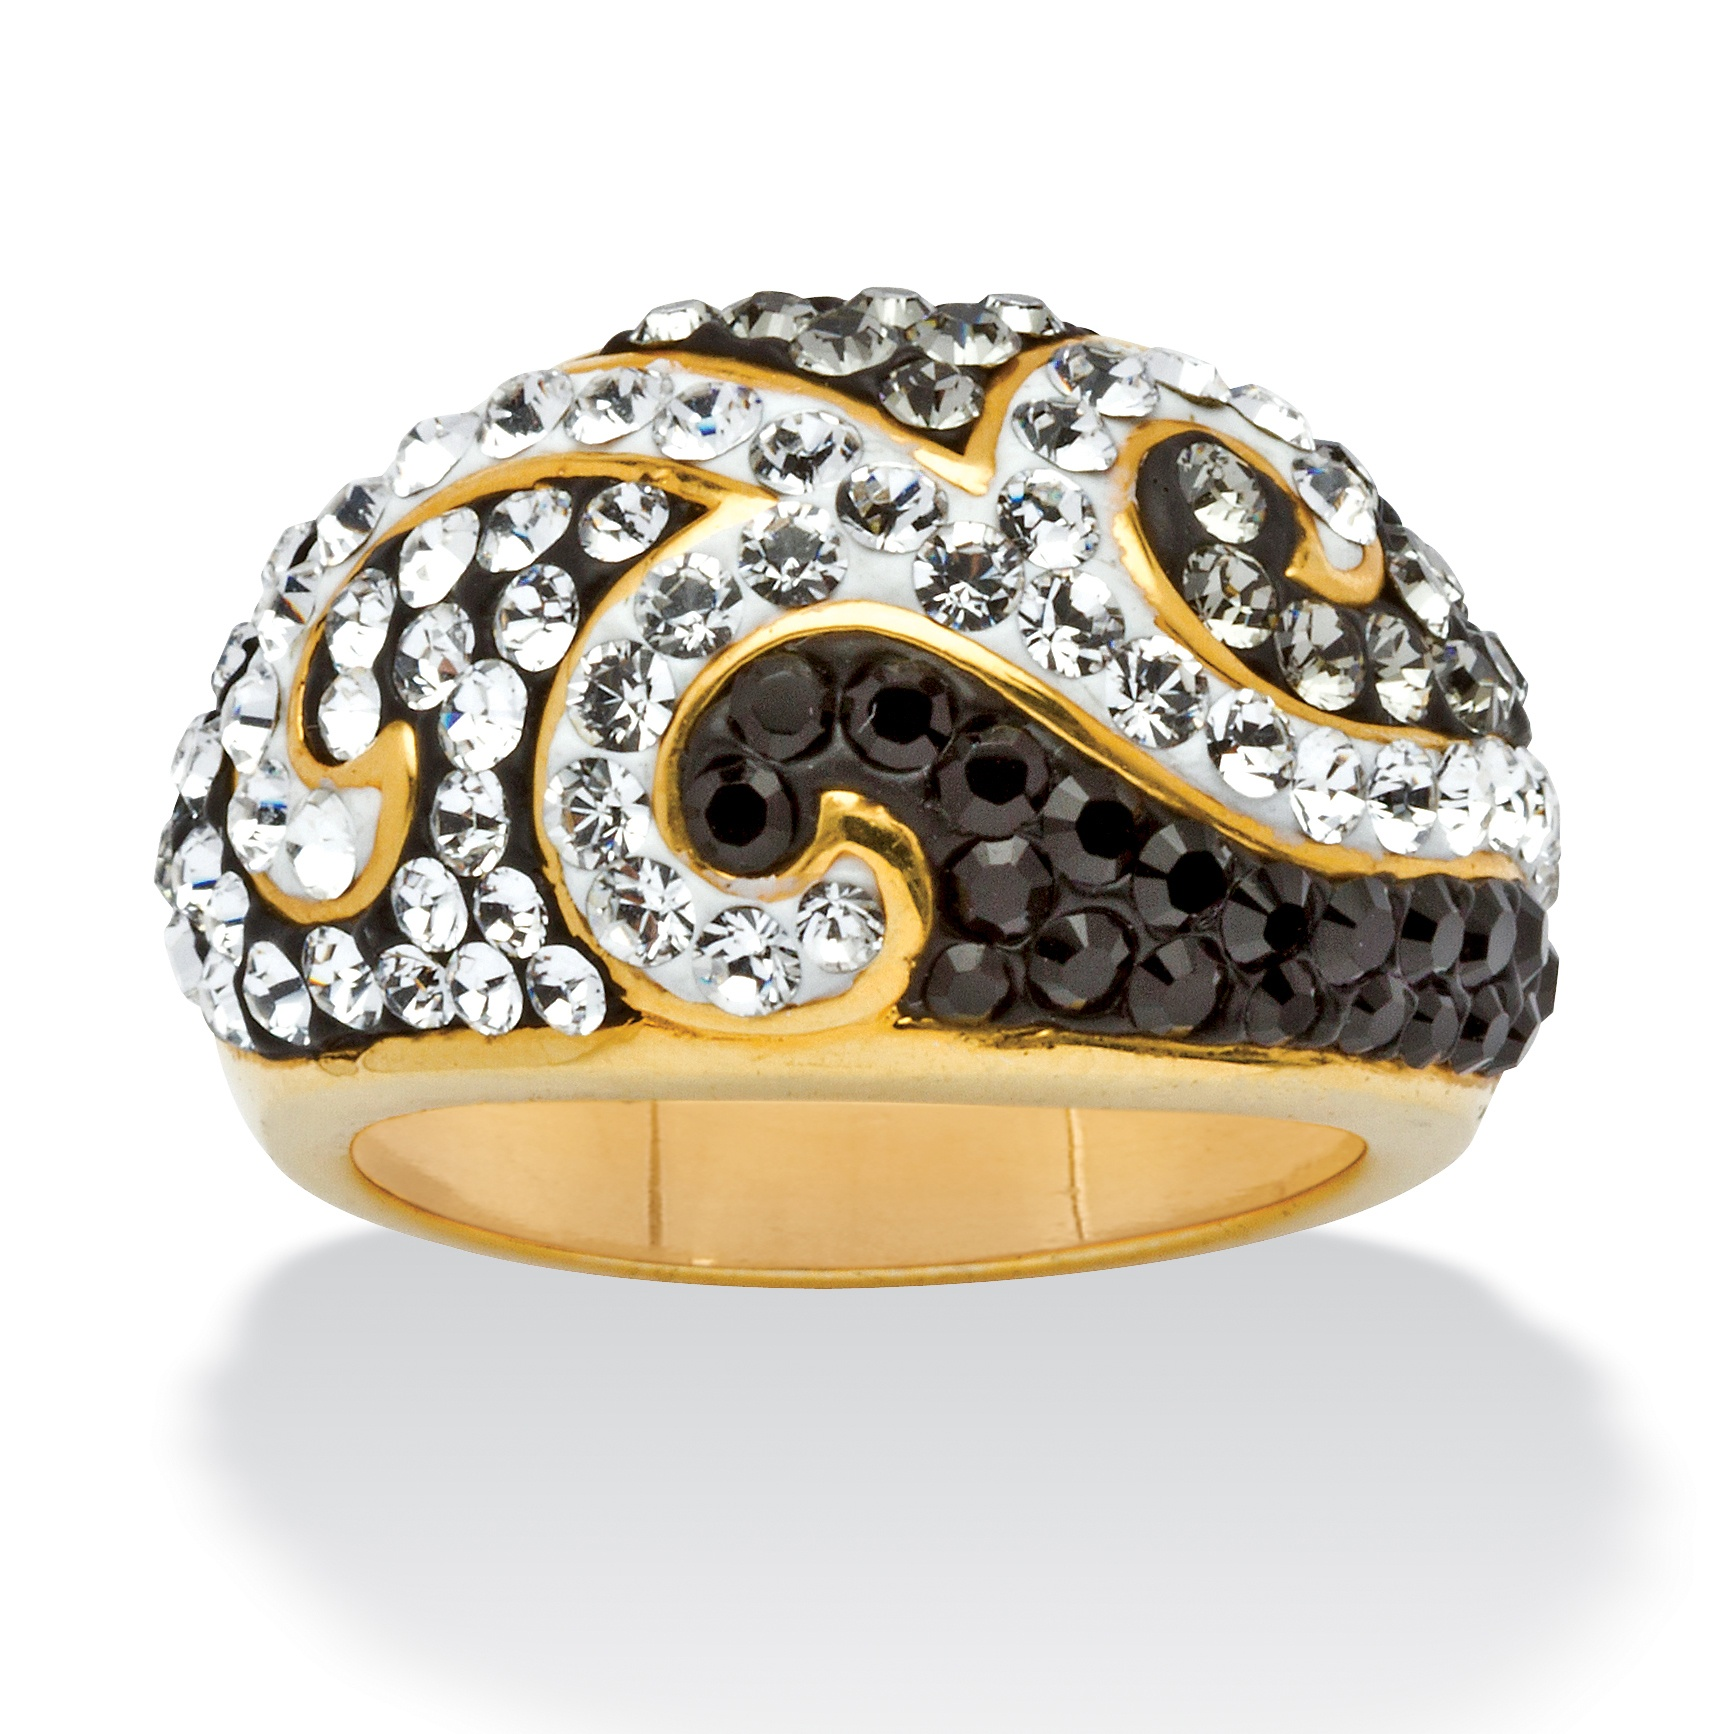 Jet Black, Grey and Crystal 18k Gold-Plated Scroll Ring made with Swarovski Elements